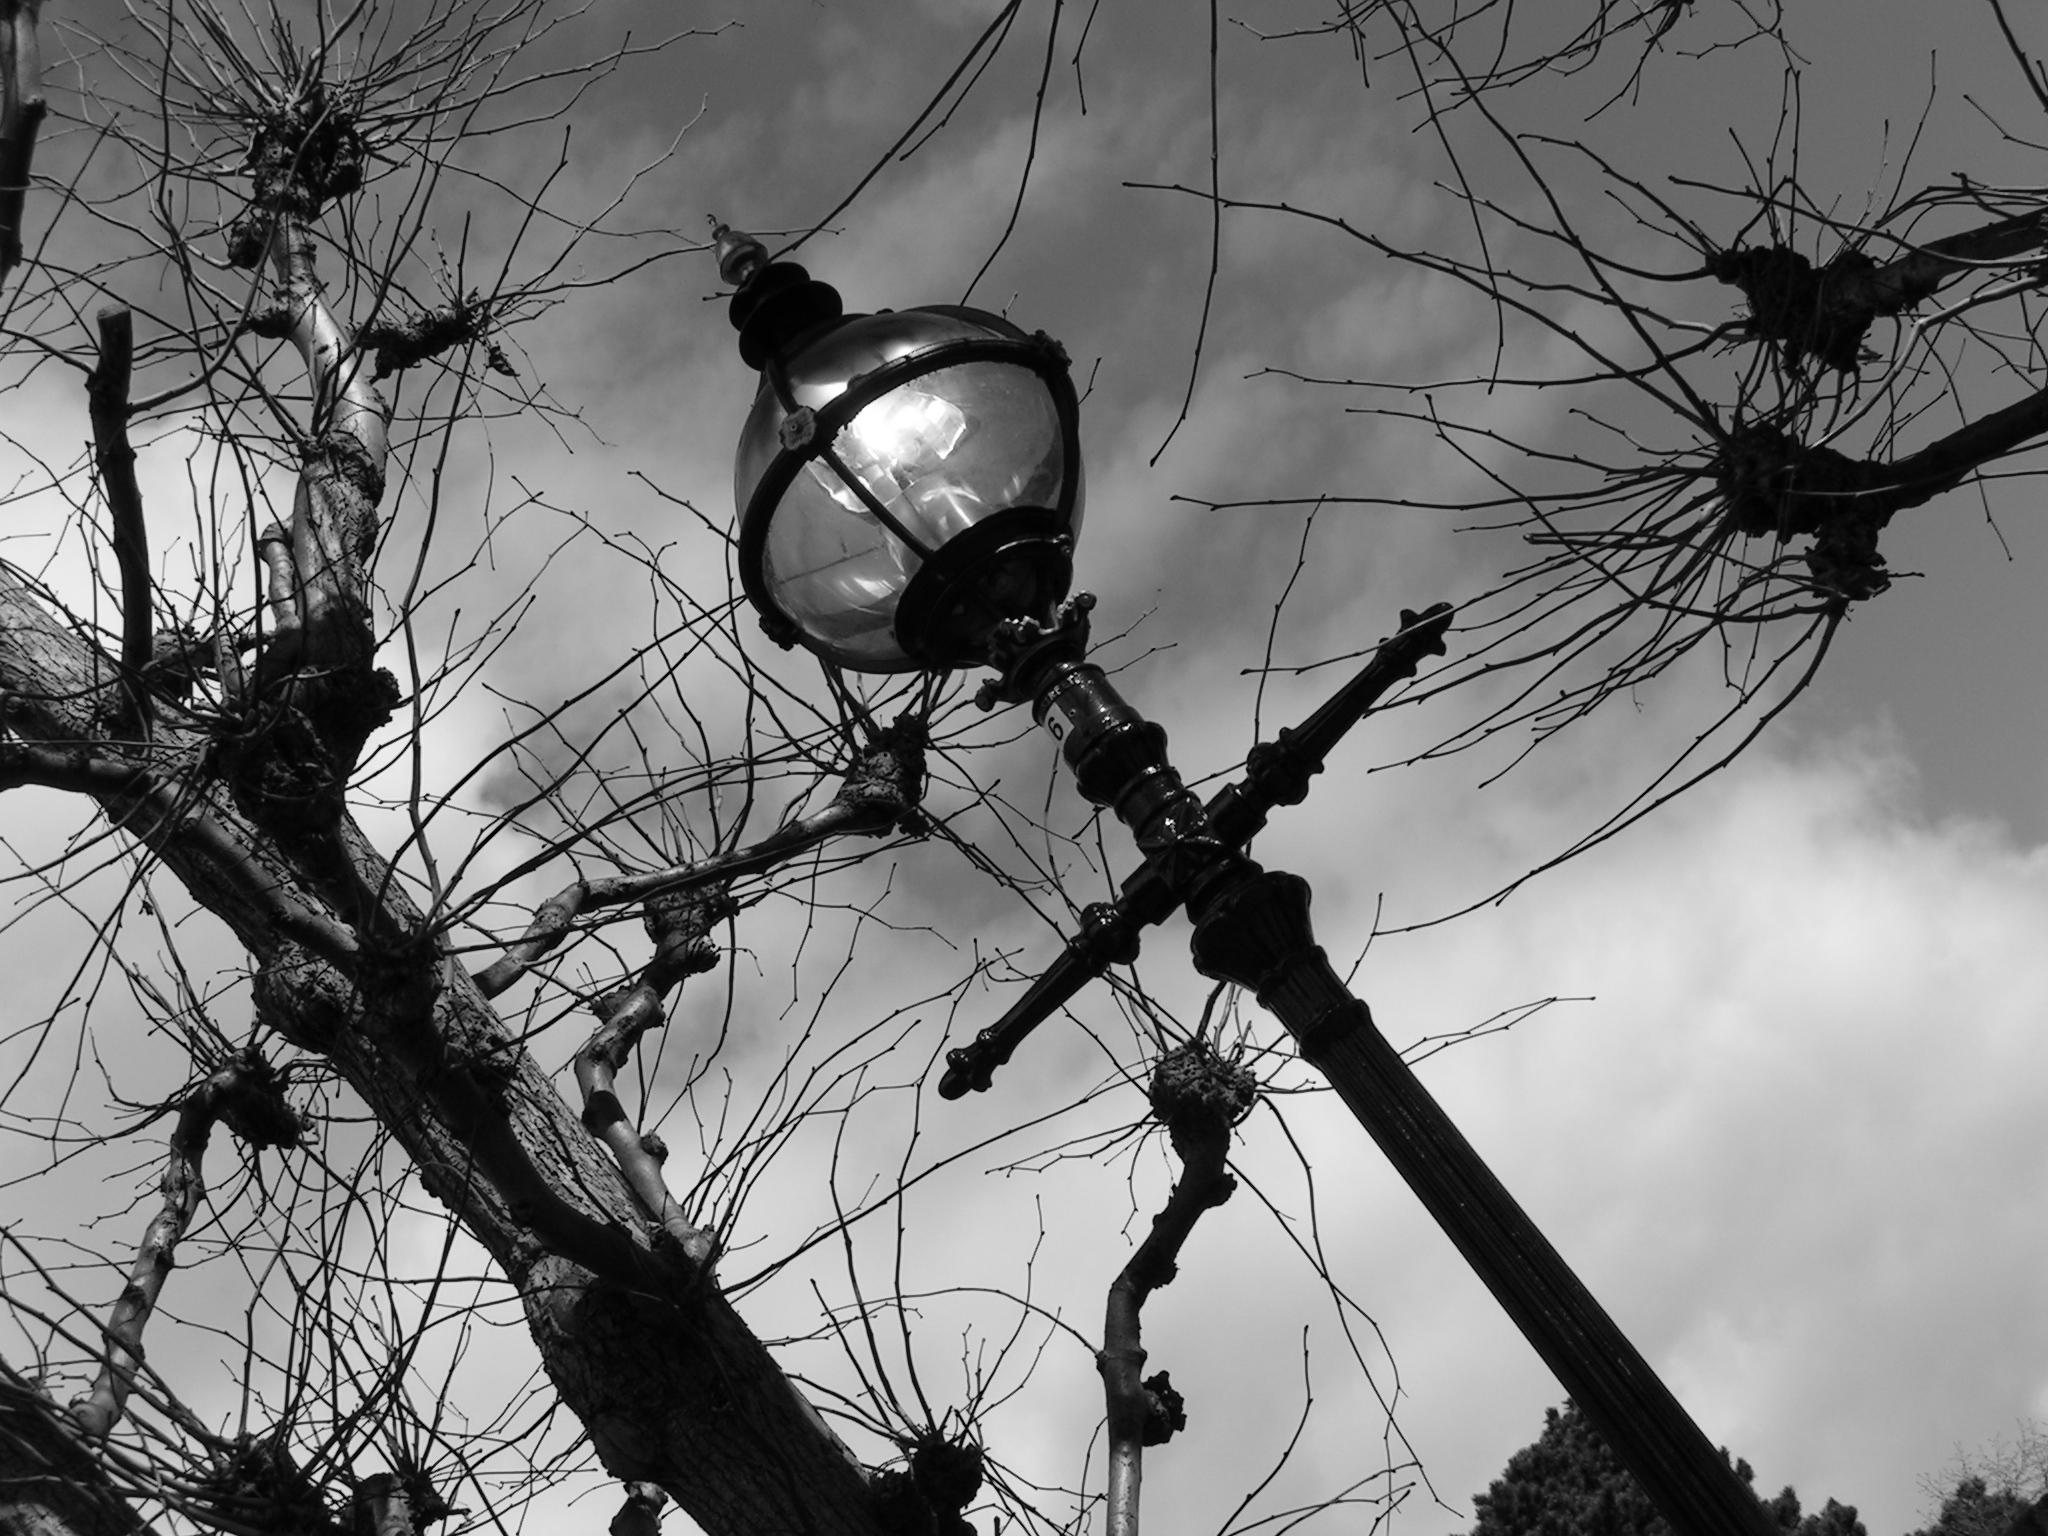 Wx3 Writing Exercise & Inspiration: Lamppost & Branches